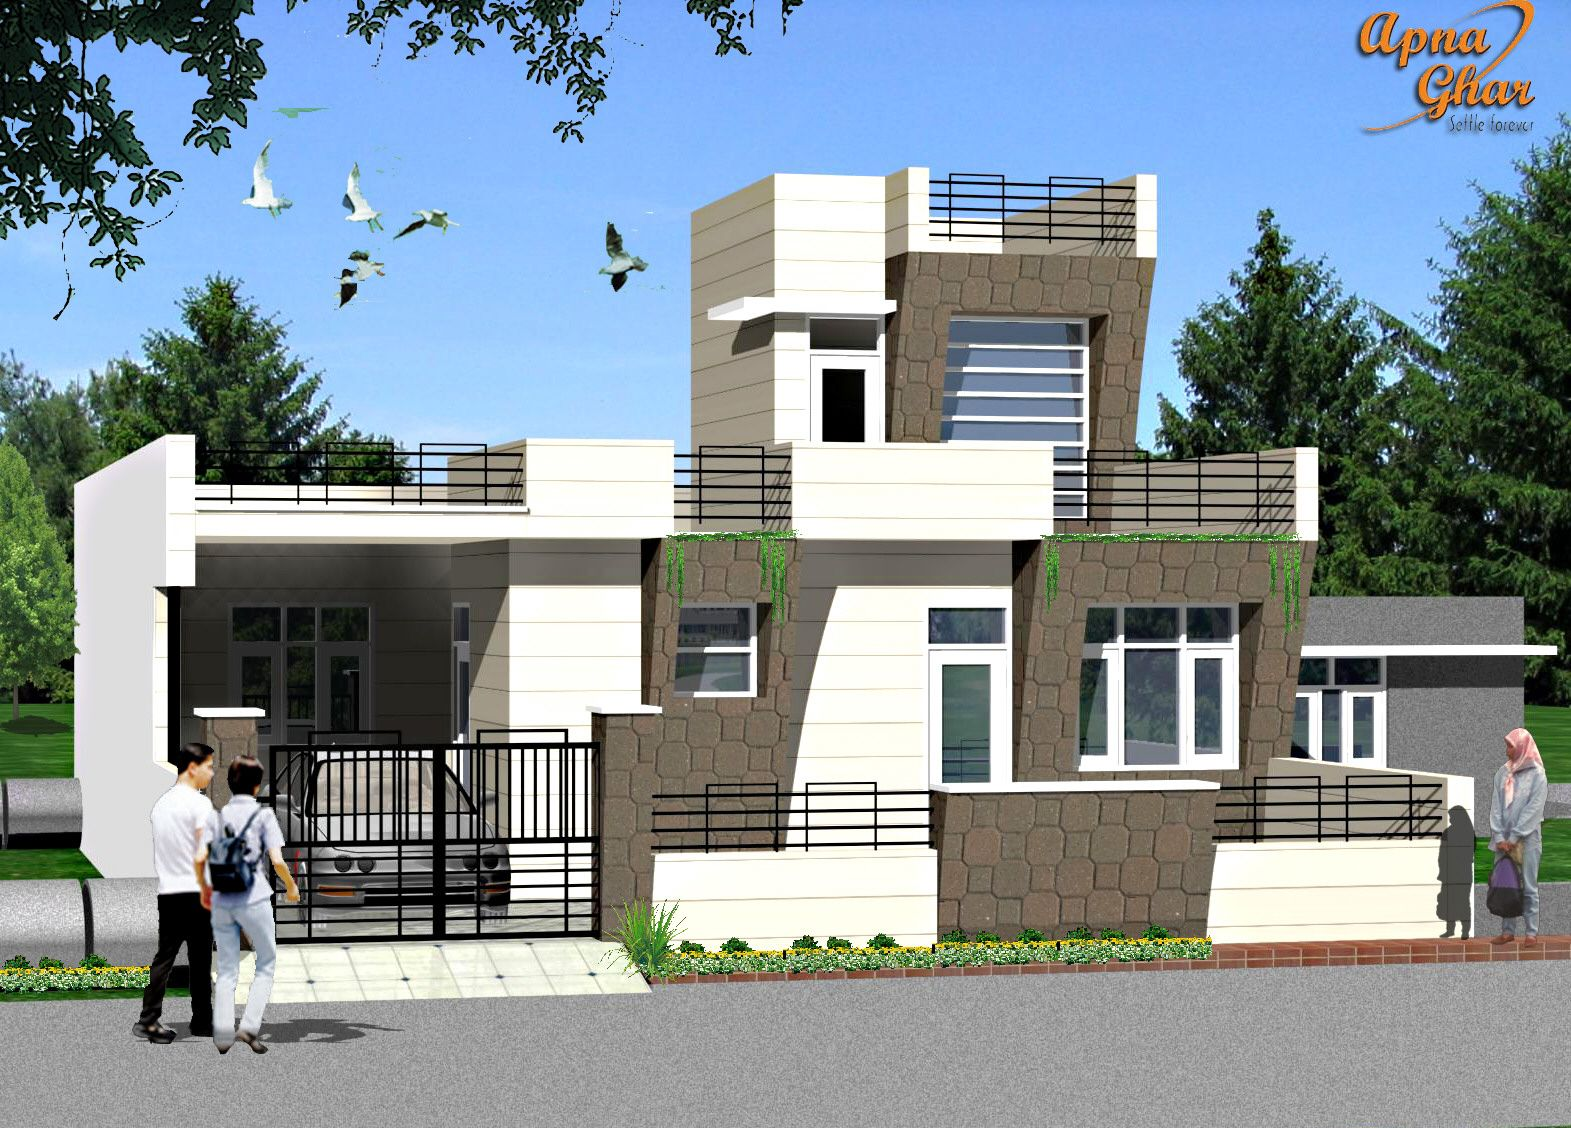 3 Bedroom Modern Simplex 1 Floor House Design Area 242m2 11m X 22m Cl